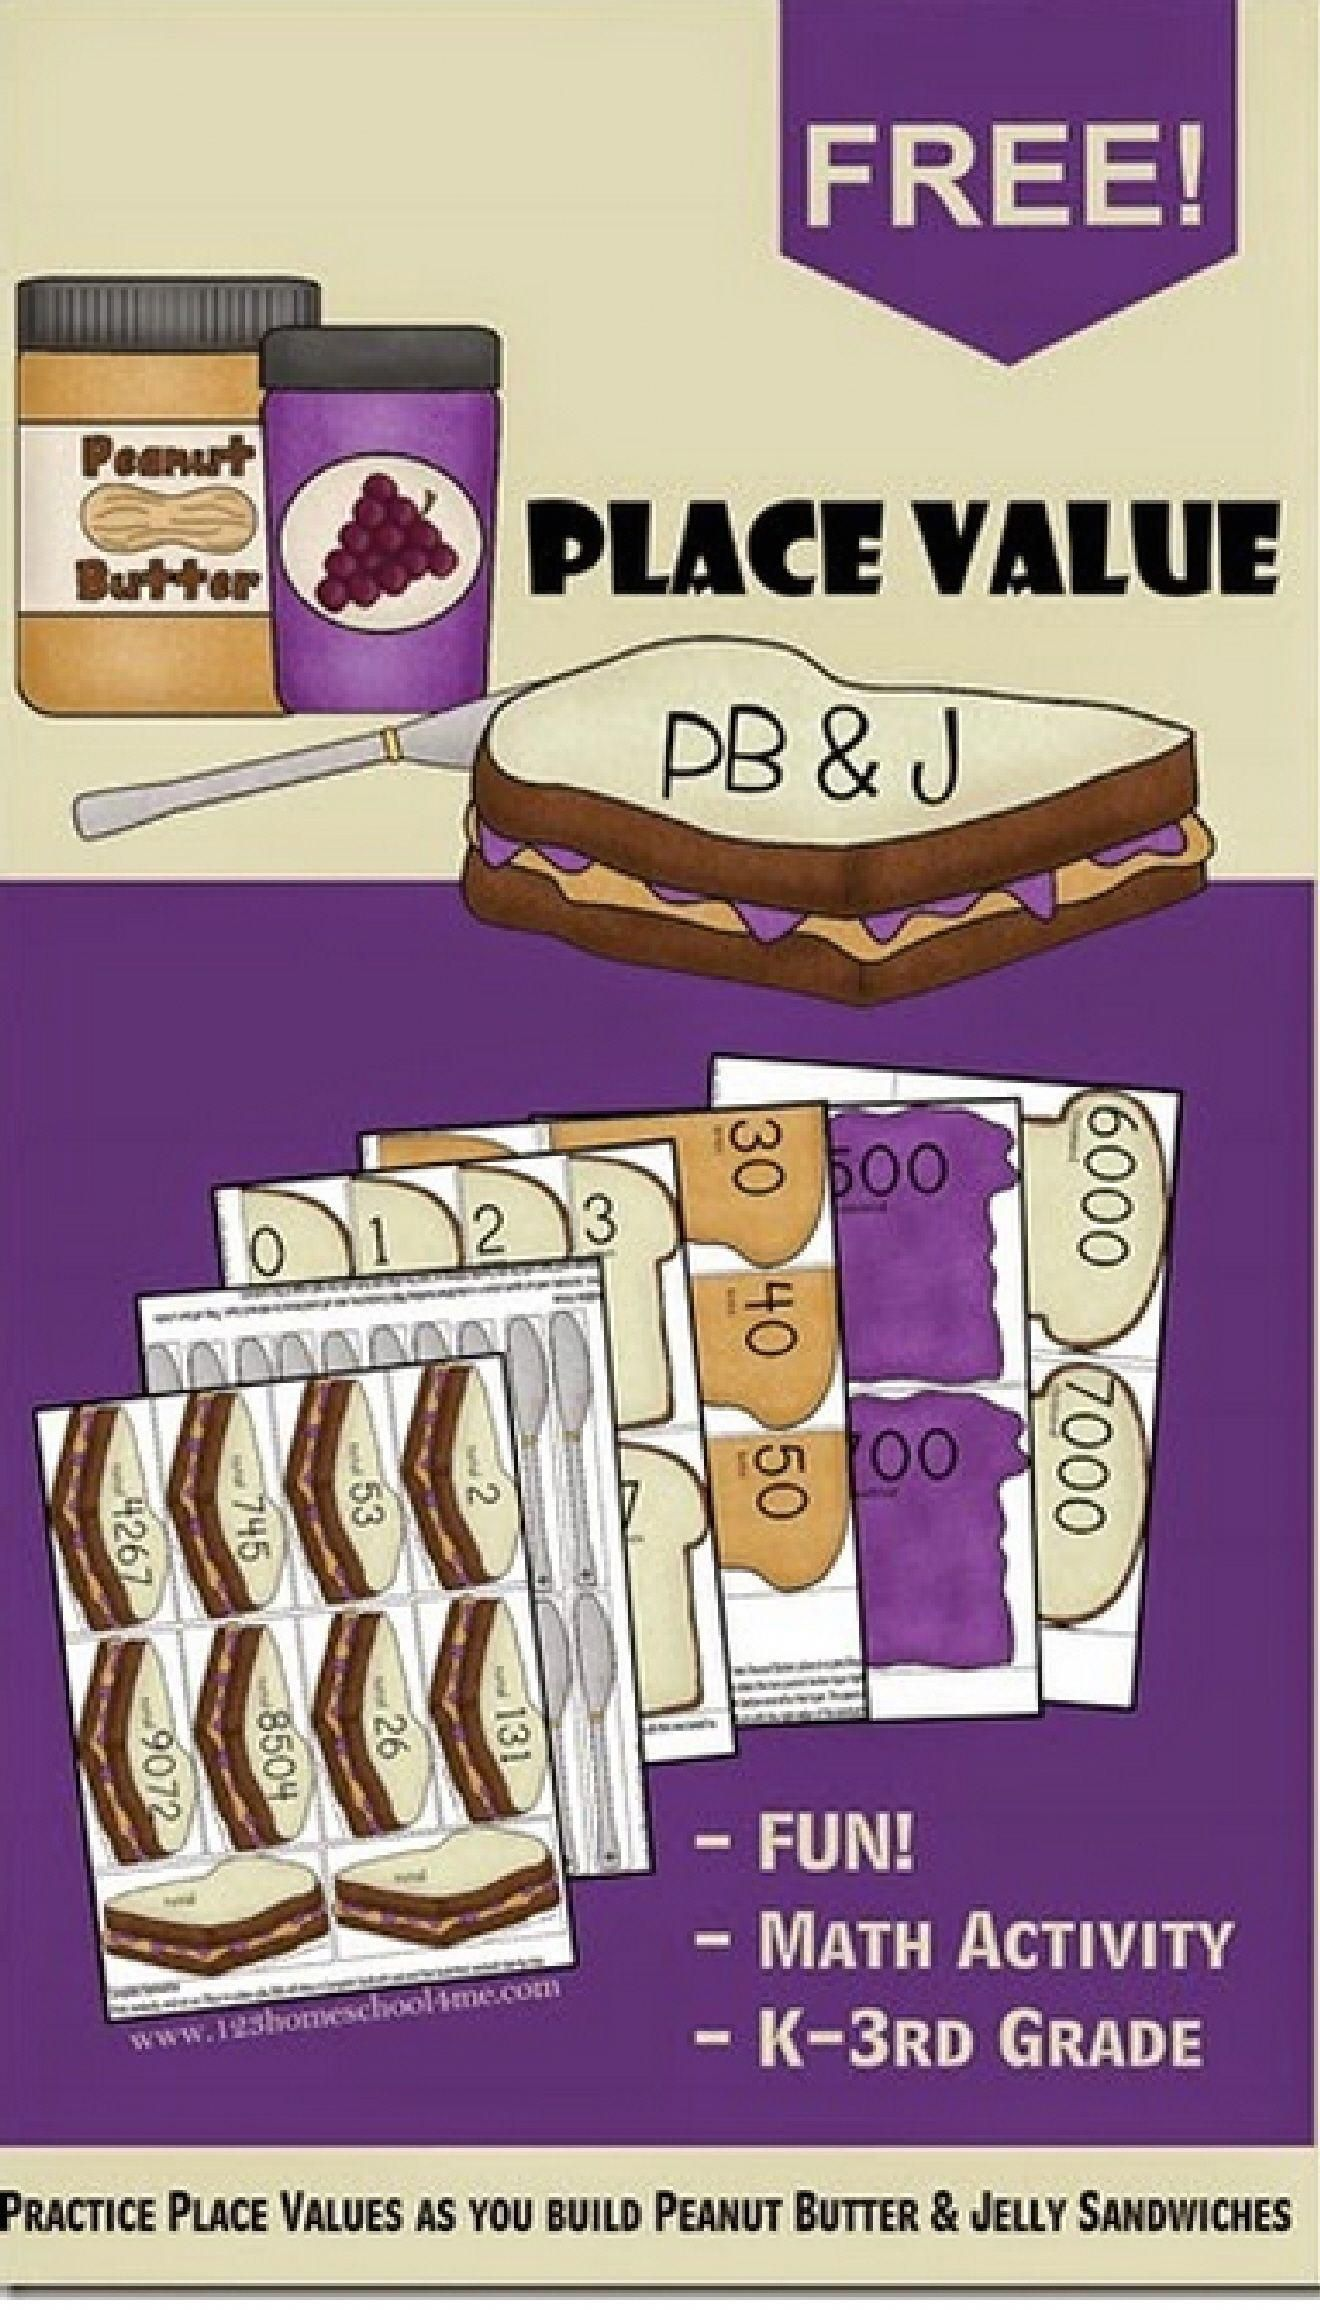 Free Place Value Pb And J Sandwiches